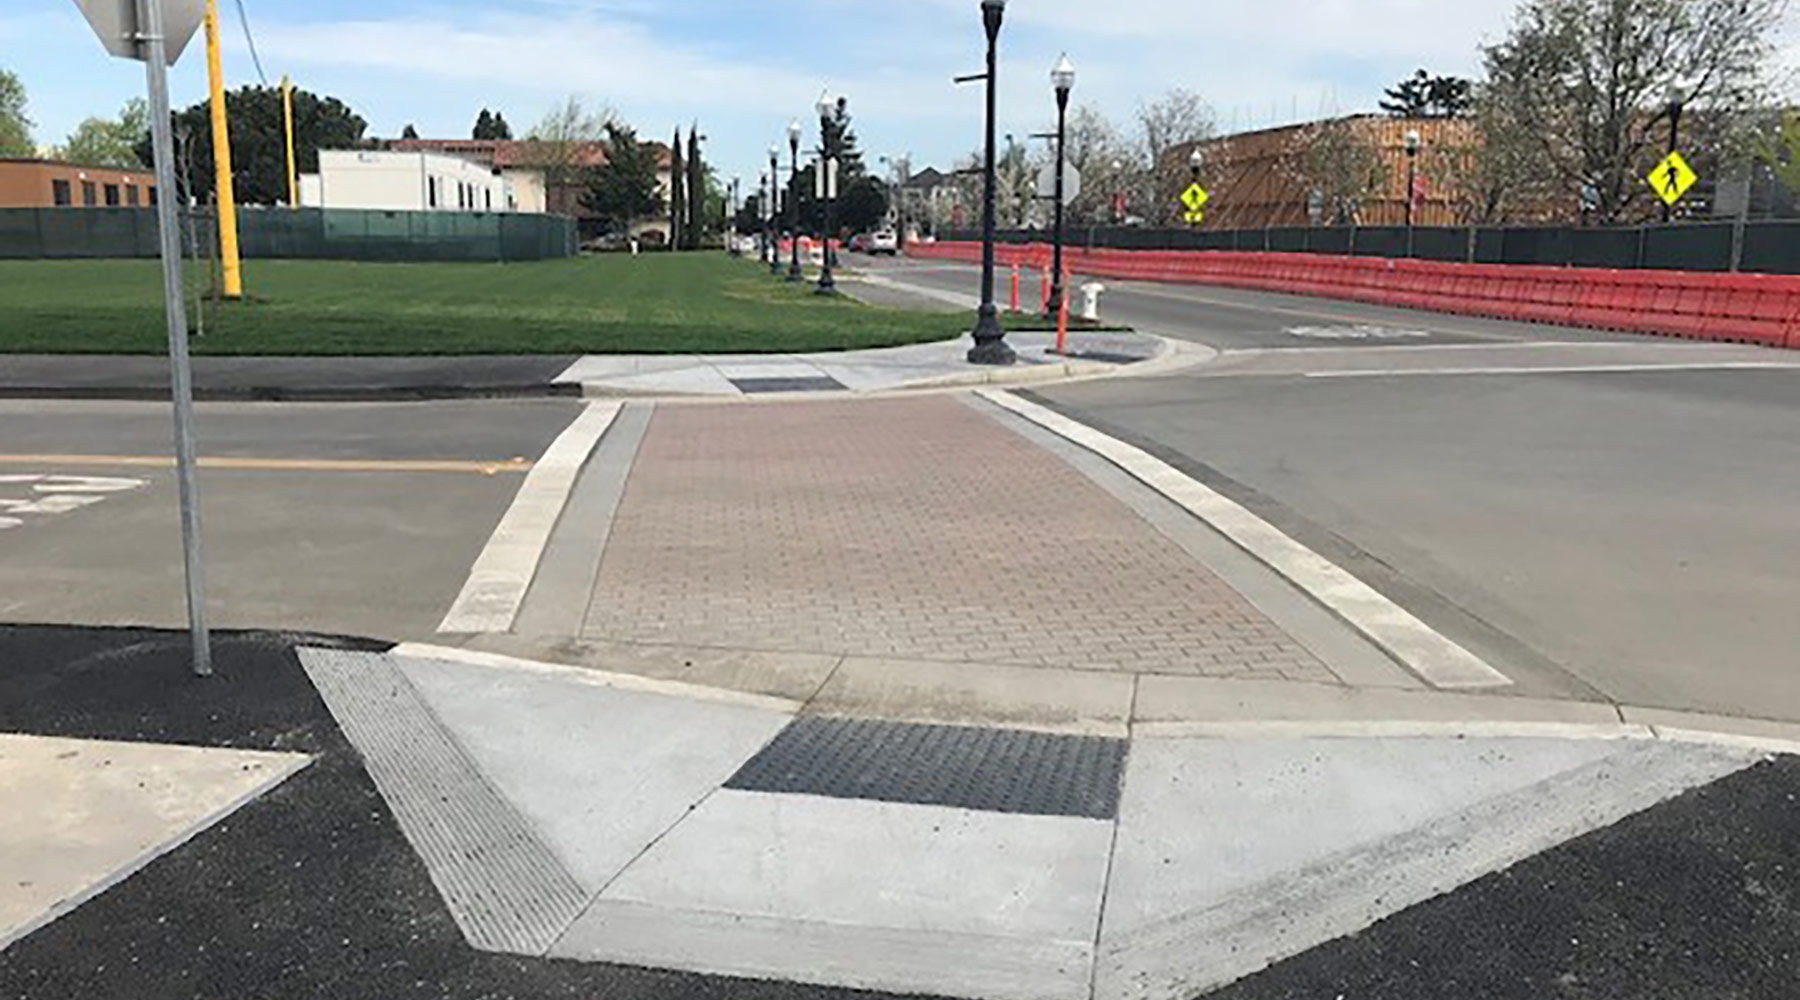 Handicap ramps with AC sidewalk complete at Murphy/McKinley intersection with new paver crosswalk.